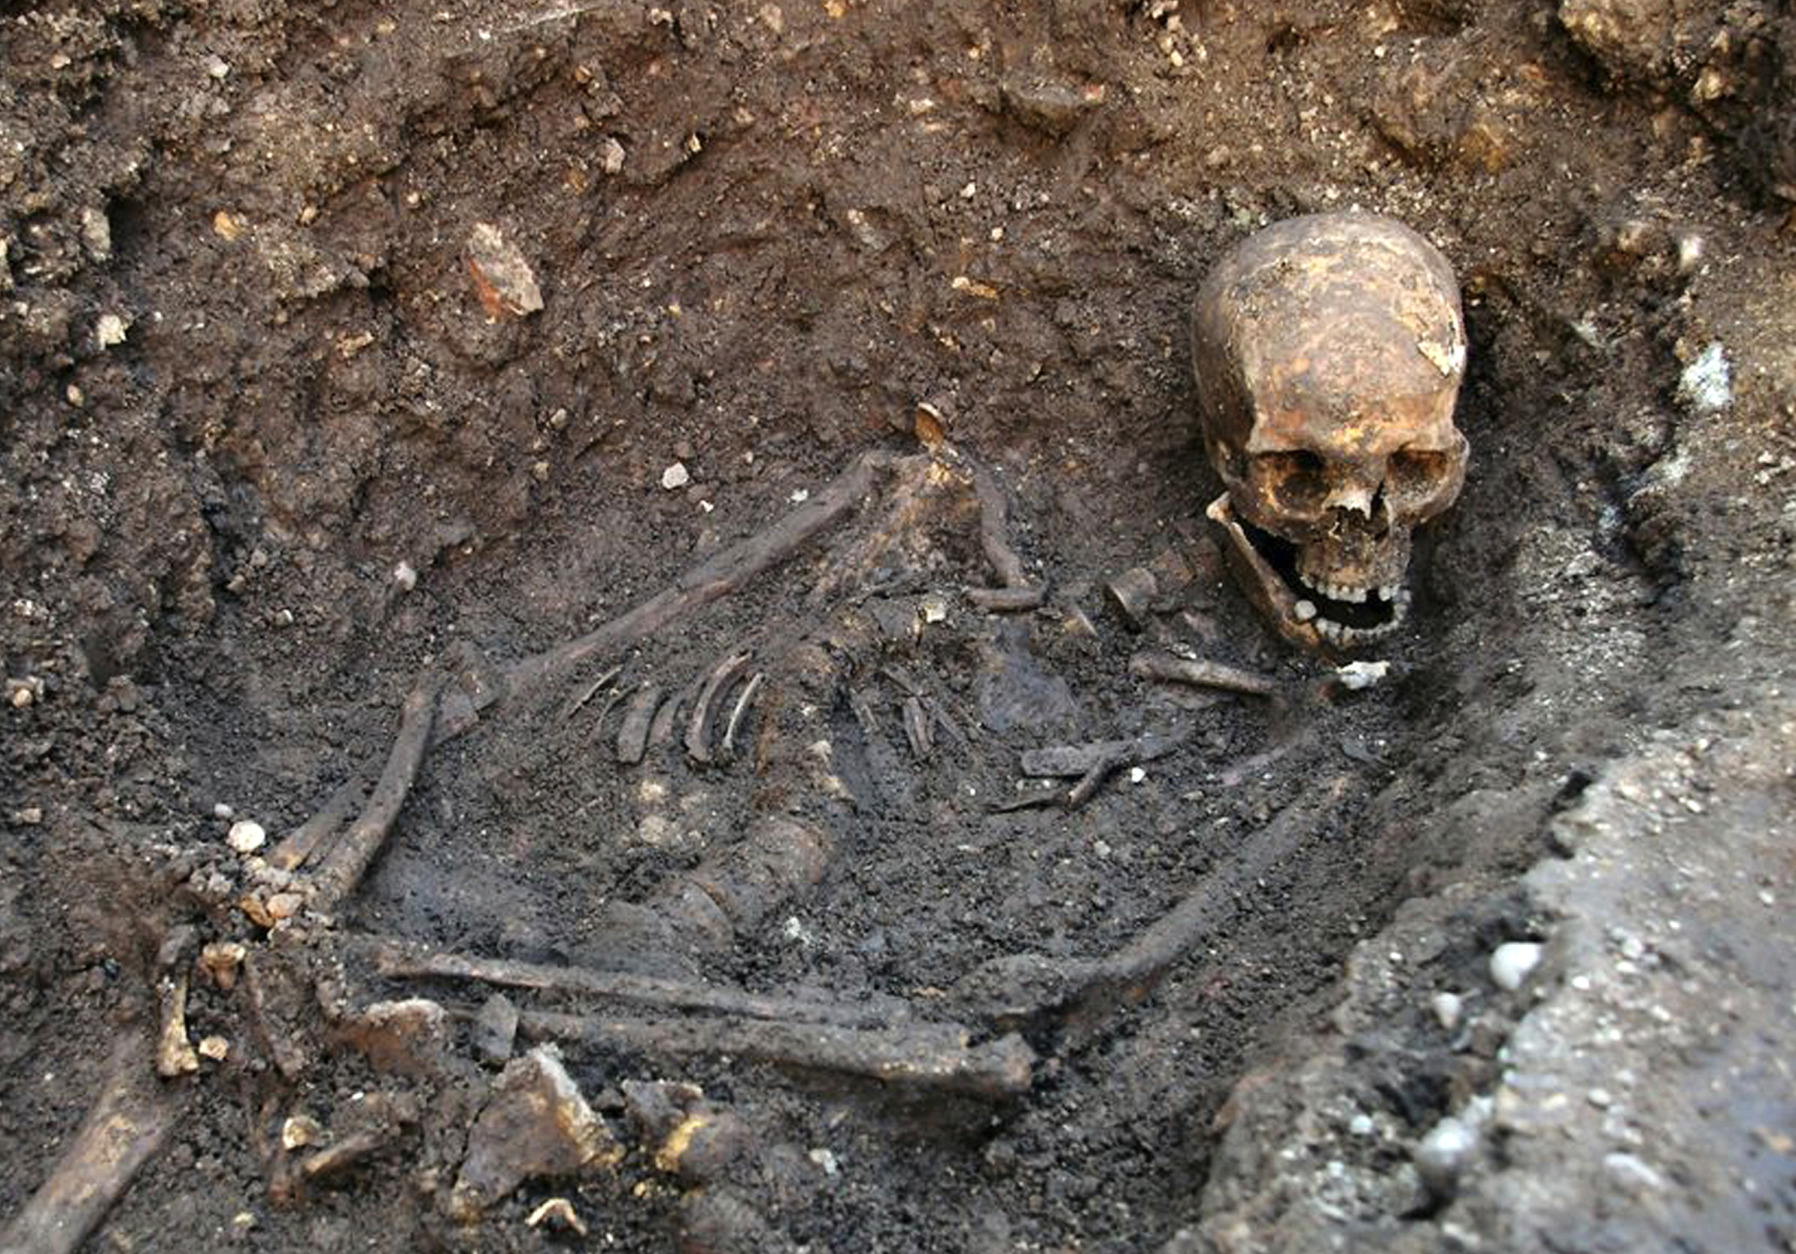 """FILE- This is an undated file photo released by the University of Leicester, England, showing the remains human skeleton found underneath a car park in Leicester, England, September 2012, which has been declared """"beyond reasonable doubt"""" to be the long lost remains of England's King Richard III, missing for 500 years. According to research published Tuesday Dec. 2, 2014, in the Nature Communications journal, scientists compared the skeleton's DNA to samples from living relatives but found no matches, a discovery that could throw the nobility of some royal descendants into question, including Henry V, Henry VI and the entire Tudor royal dynasty. But Kevin Schurer, pro vice-chancellor of the University of Leicester, said England's current royal family does not claim Richard III as a relative and shouldn't be worried about the legitimacy of their royal line. (AP Photo/University of Leicester, FILE)"""